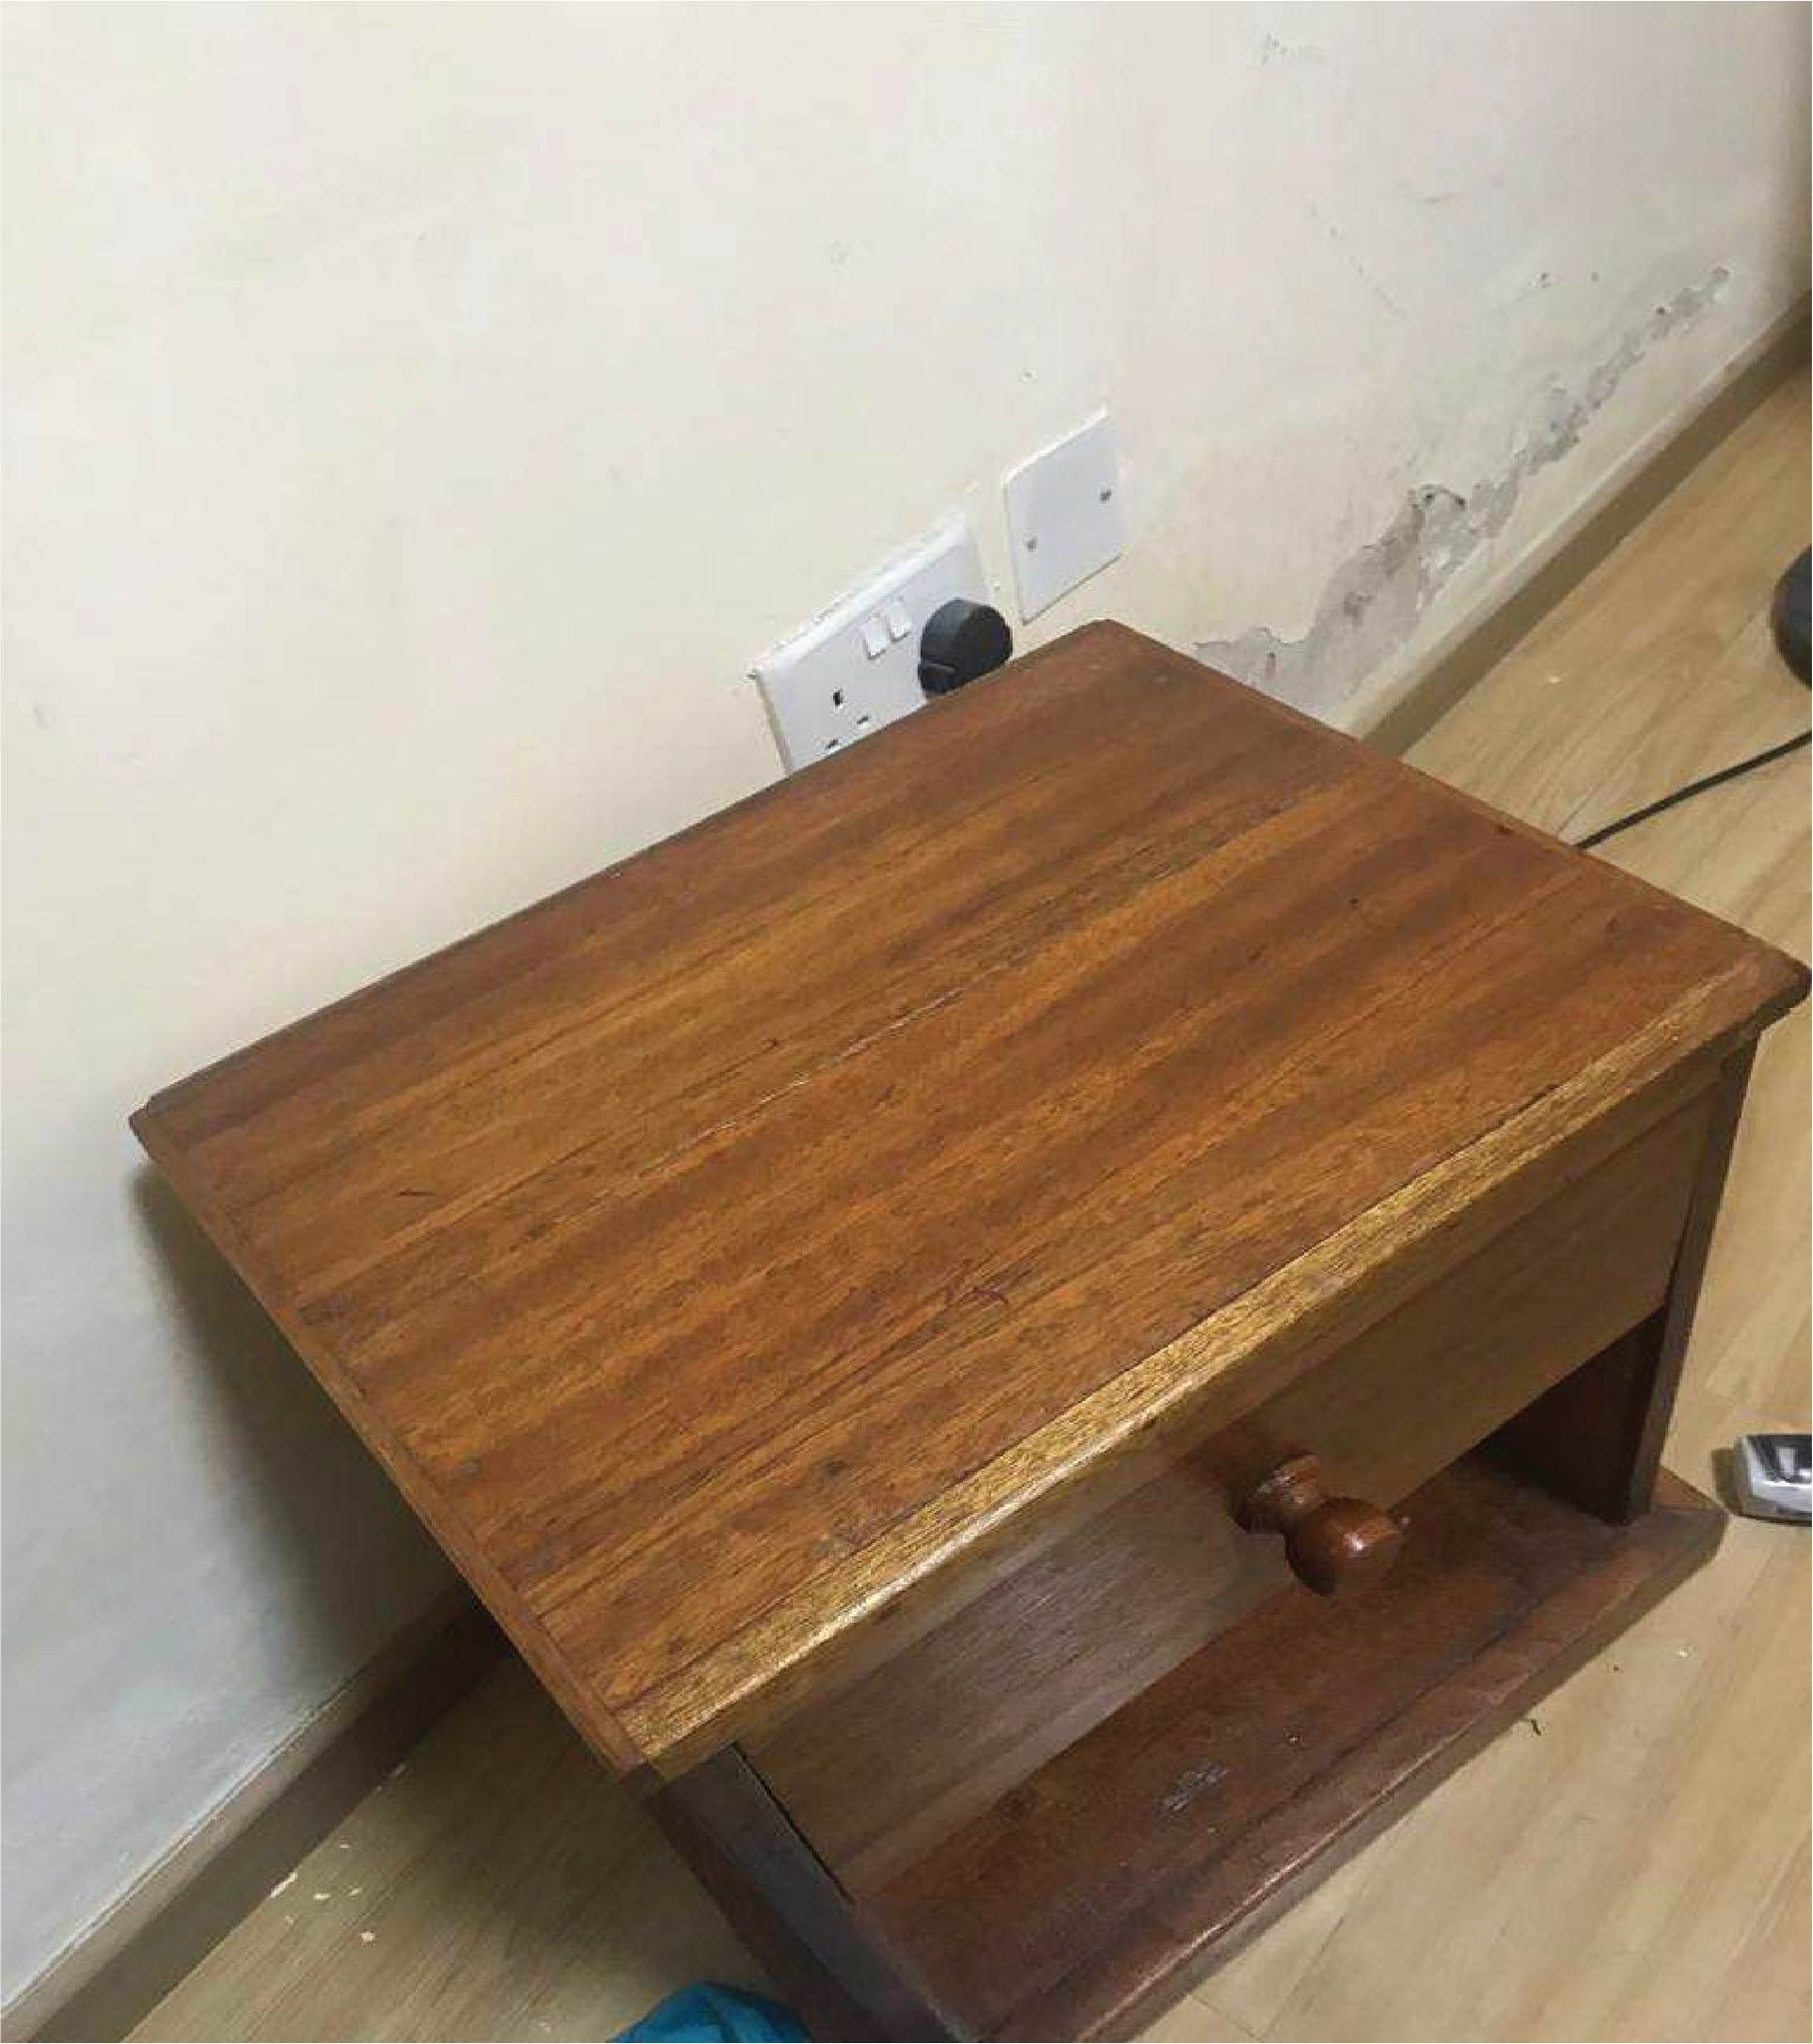 Bed side tables 1.5ft x 1.5ft